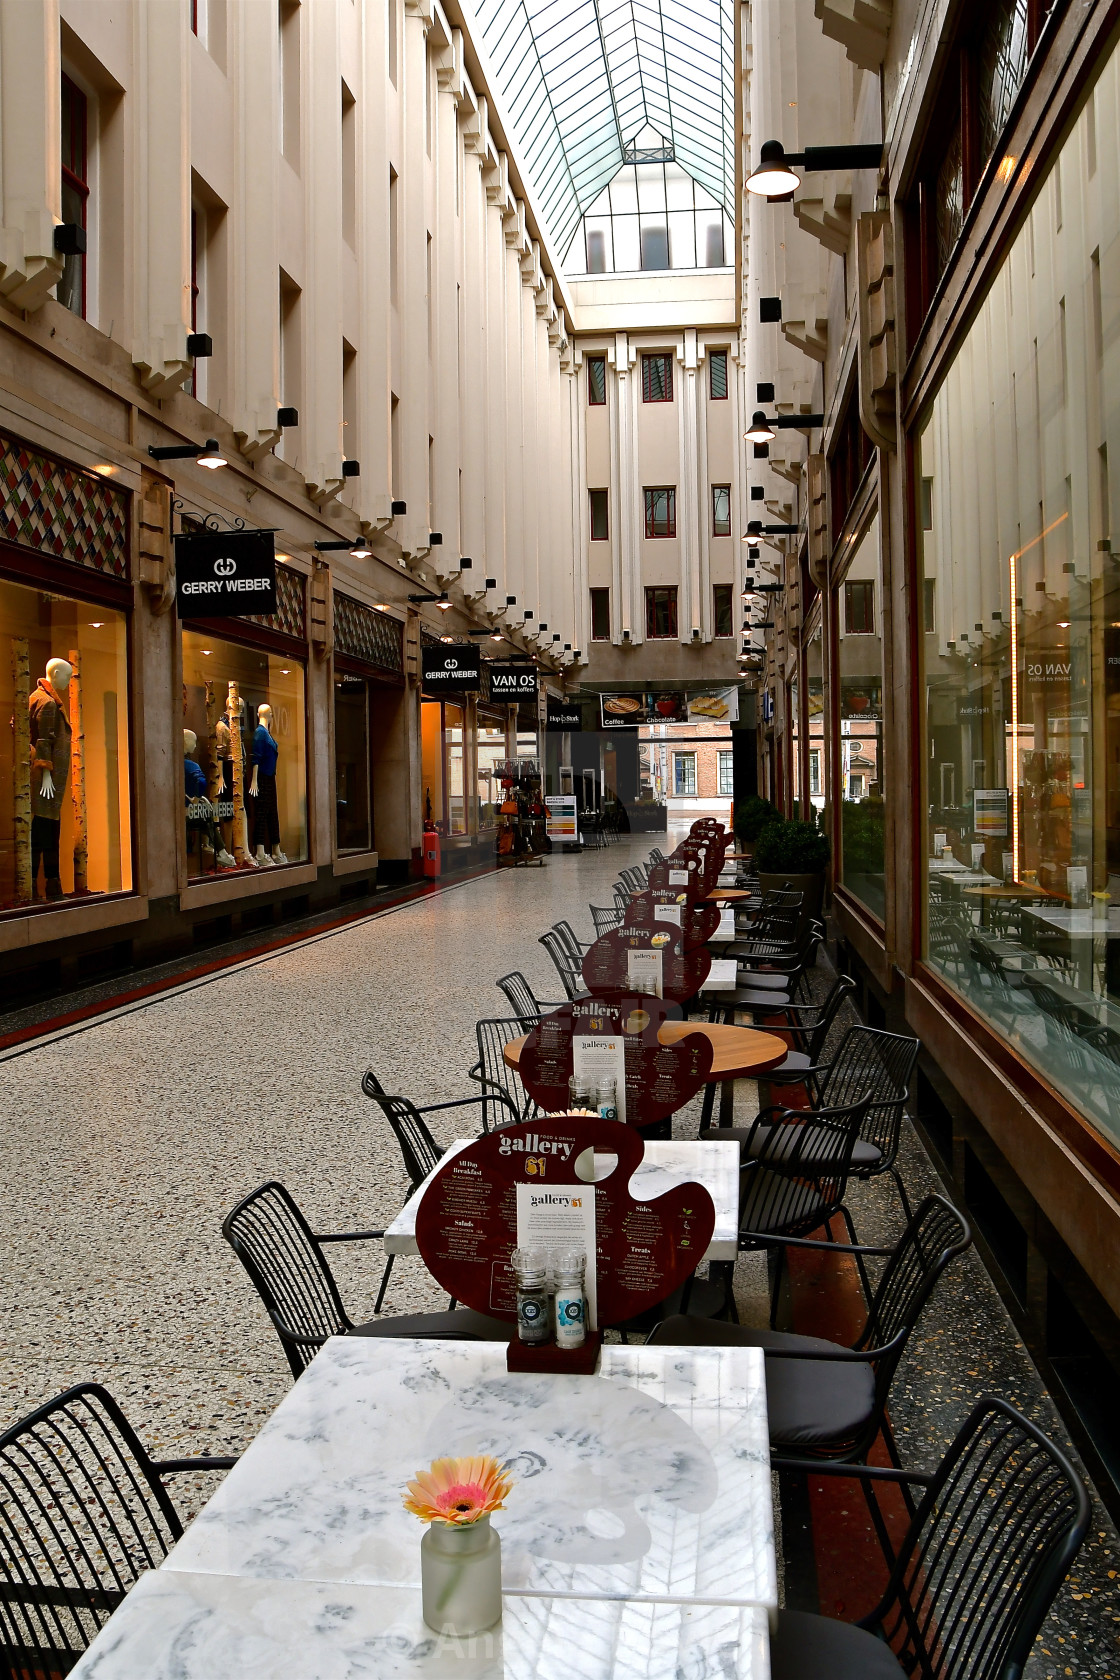 """A cafe in The passage - Den Haag"" stock image"